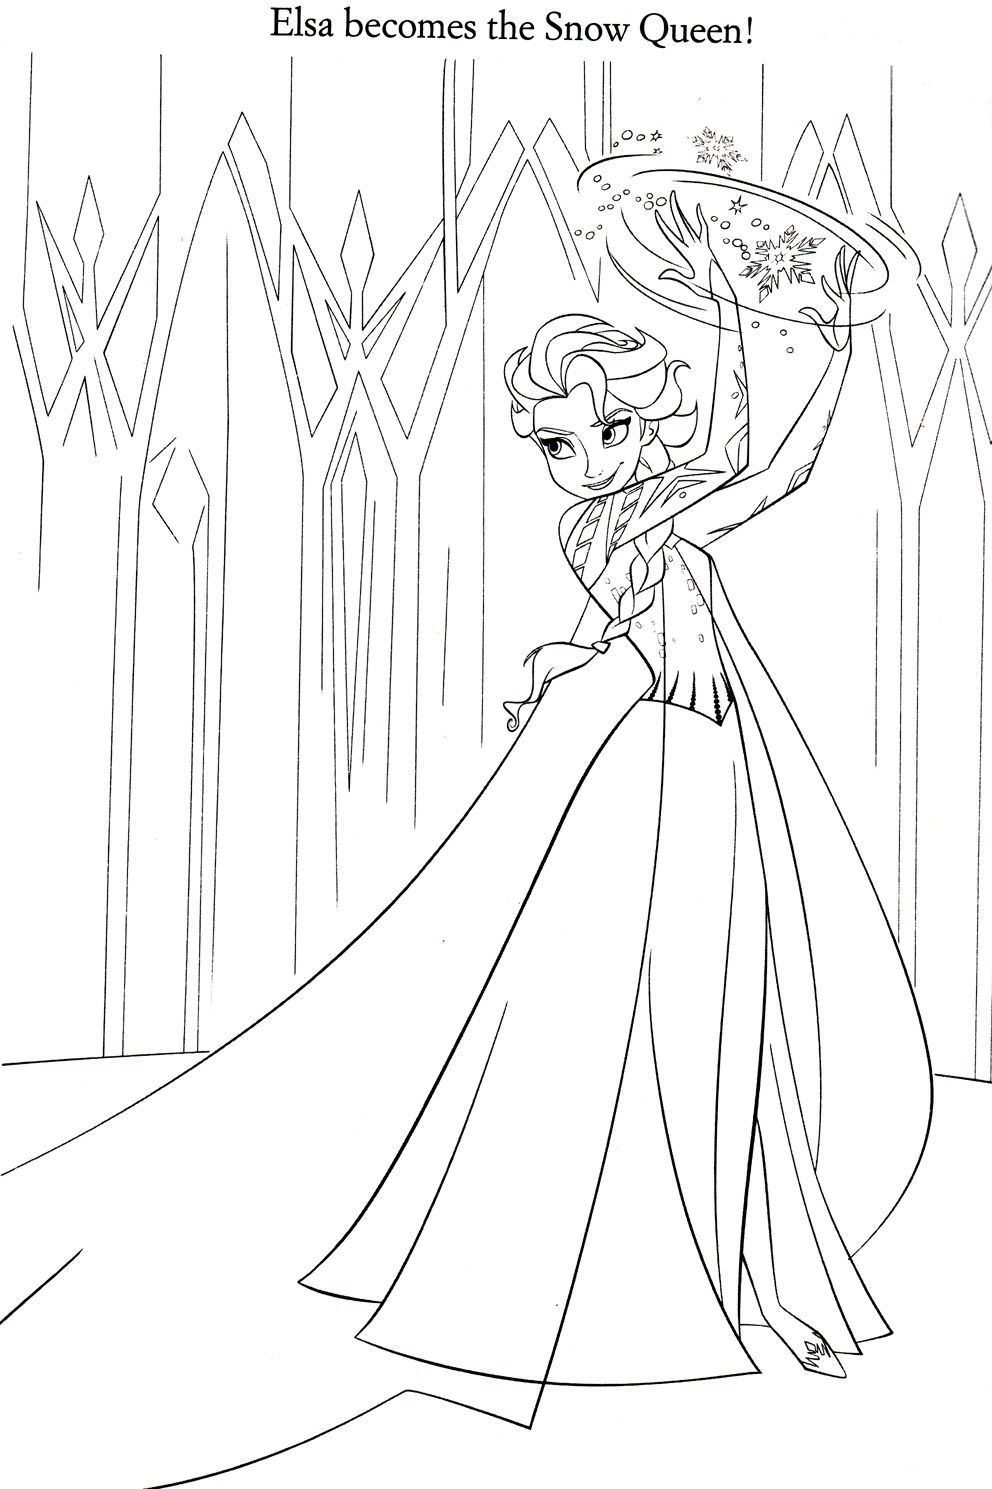 Pin By Nadine Huber On Frozen Frozen Coloring Pages Frozen Coloring Elsa Coloring Pages